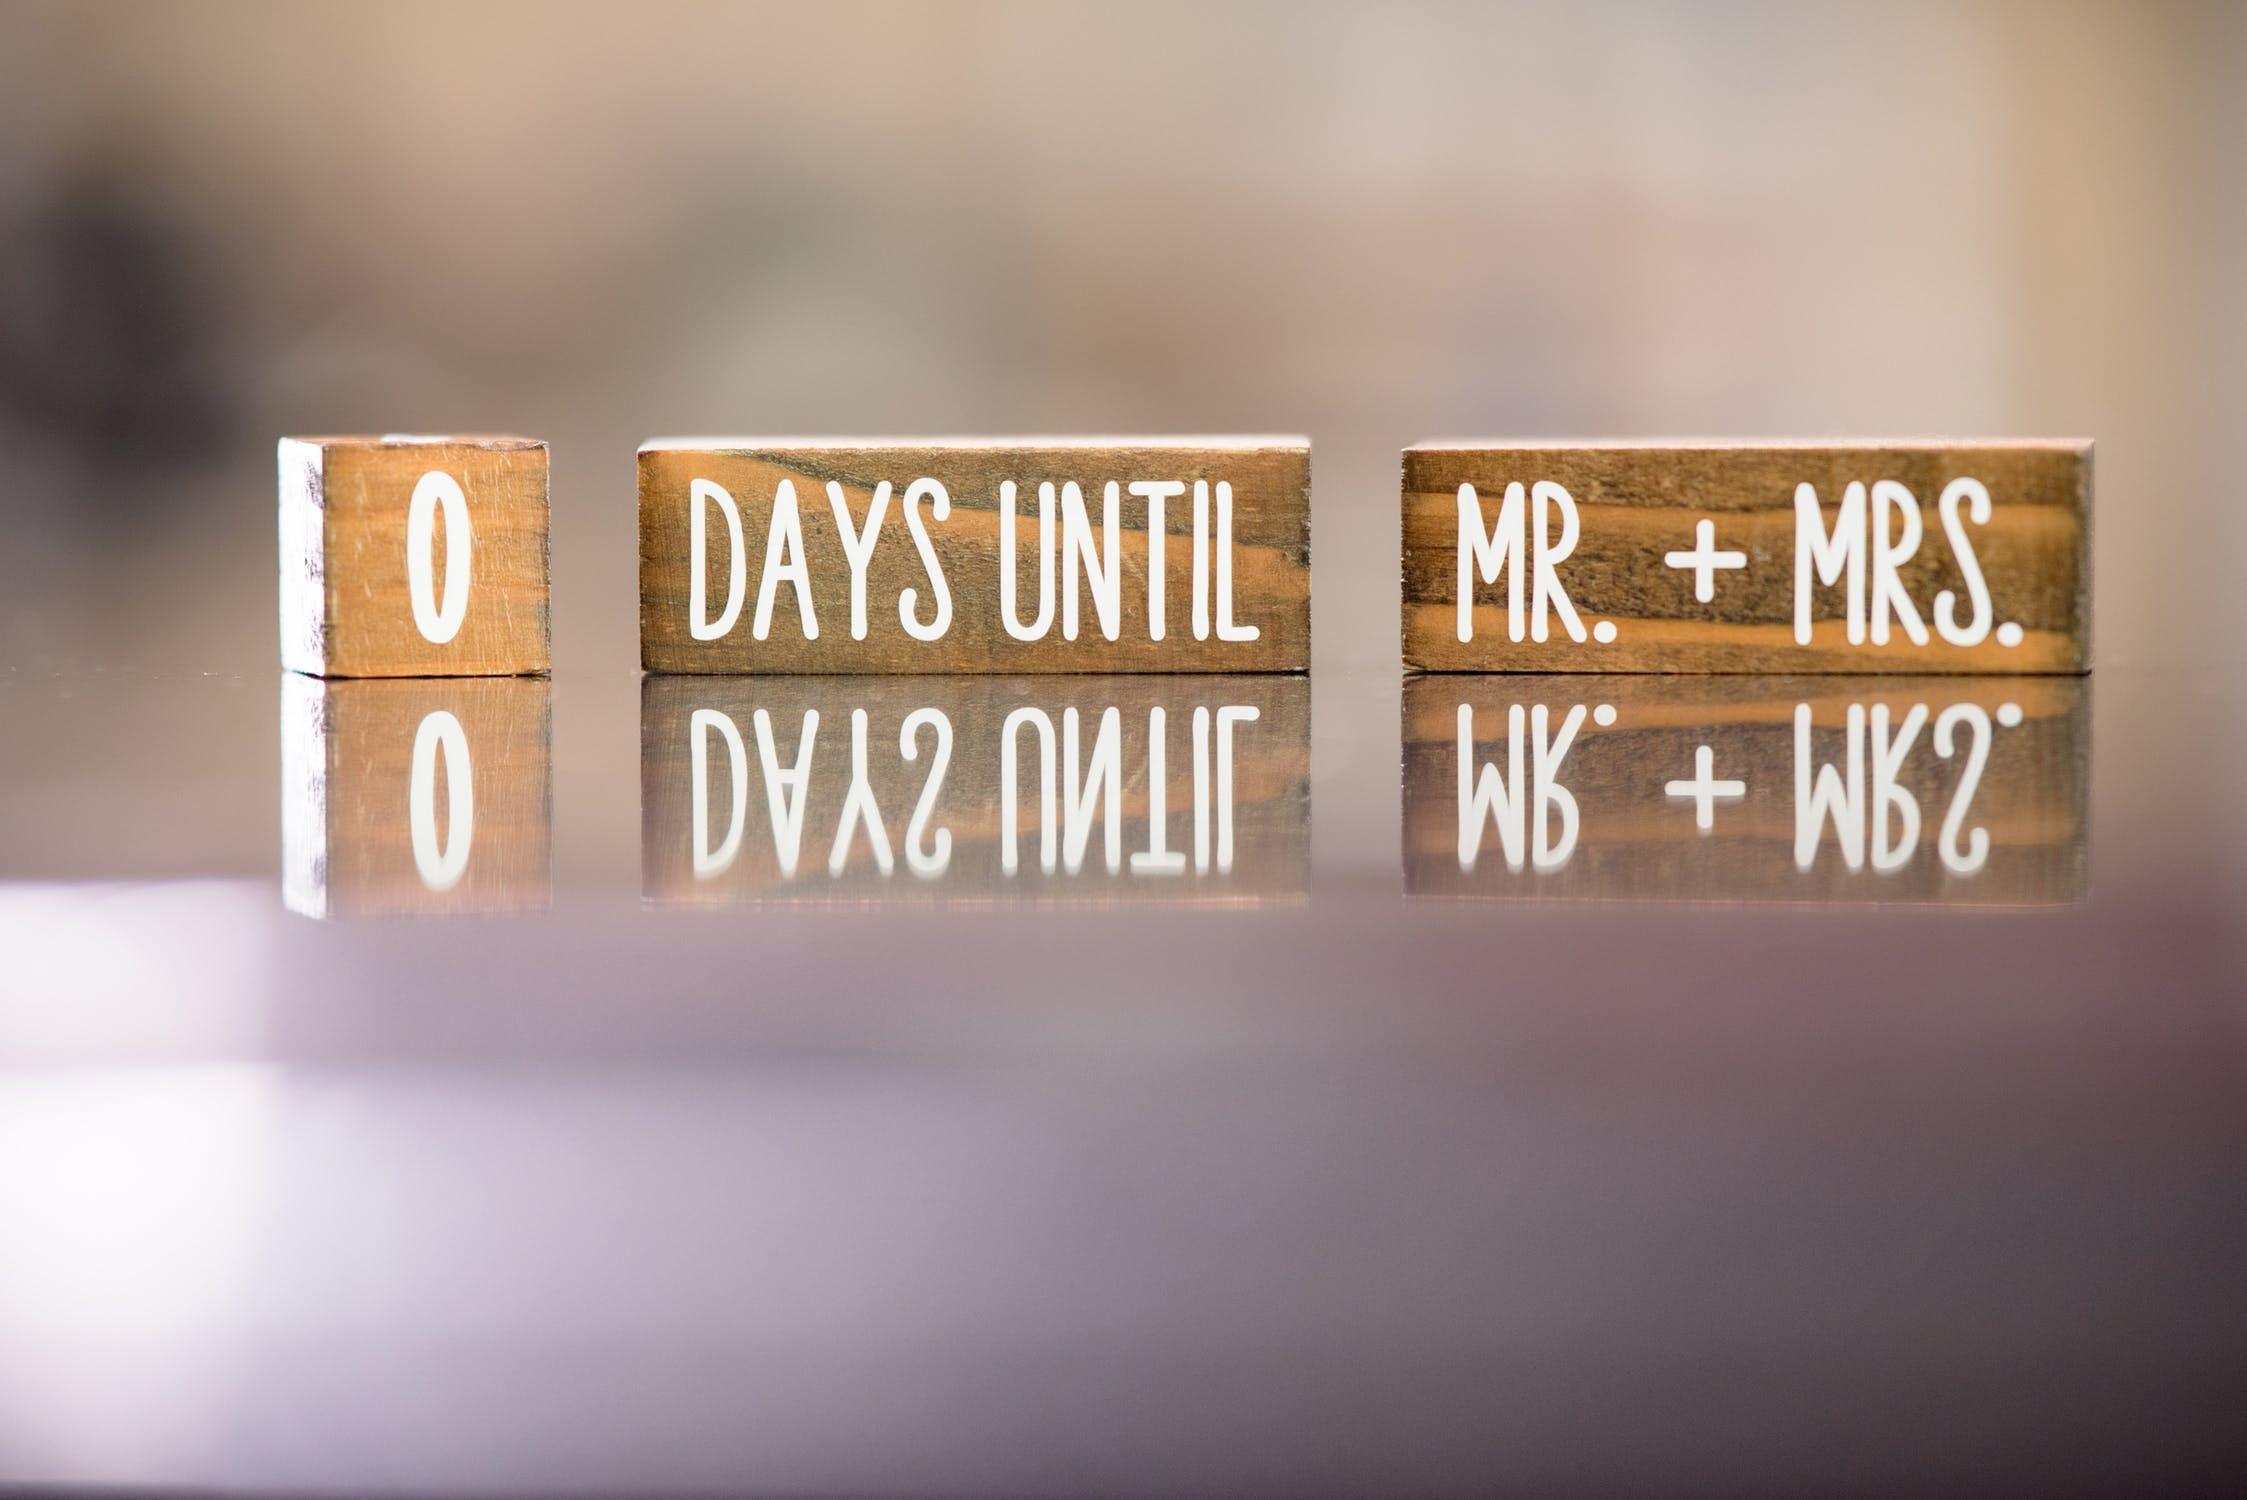 Let The Wedding Countdown Begin If You Know Us We Re Just A Little Obsessed With Tech So May We Wedding Countdown Wedding Apps Wedding Planning On A Budget